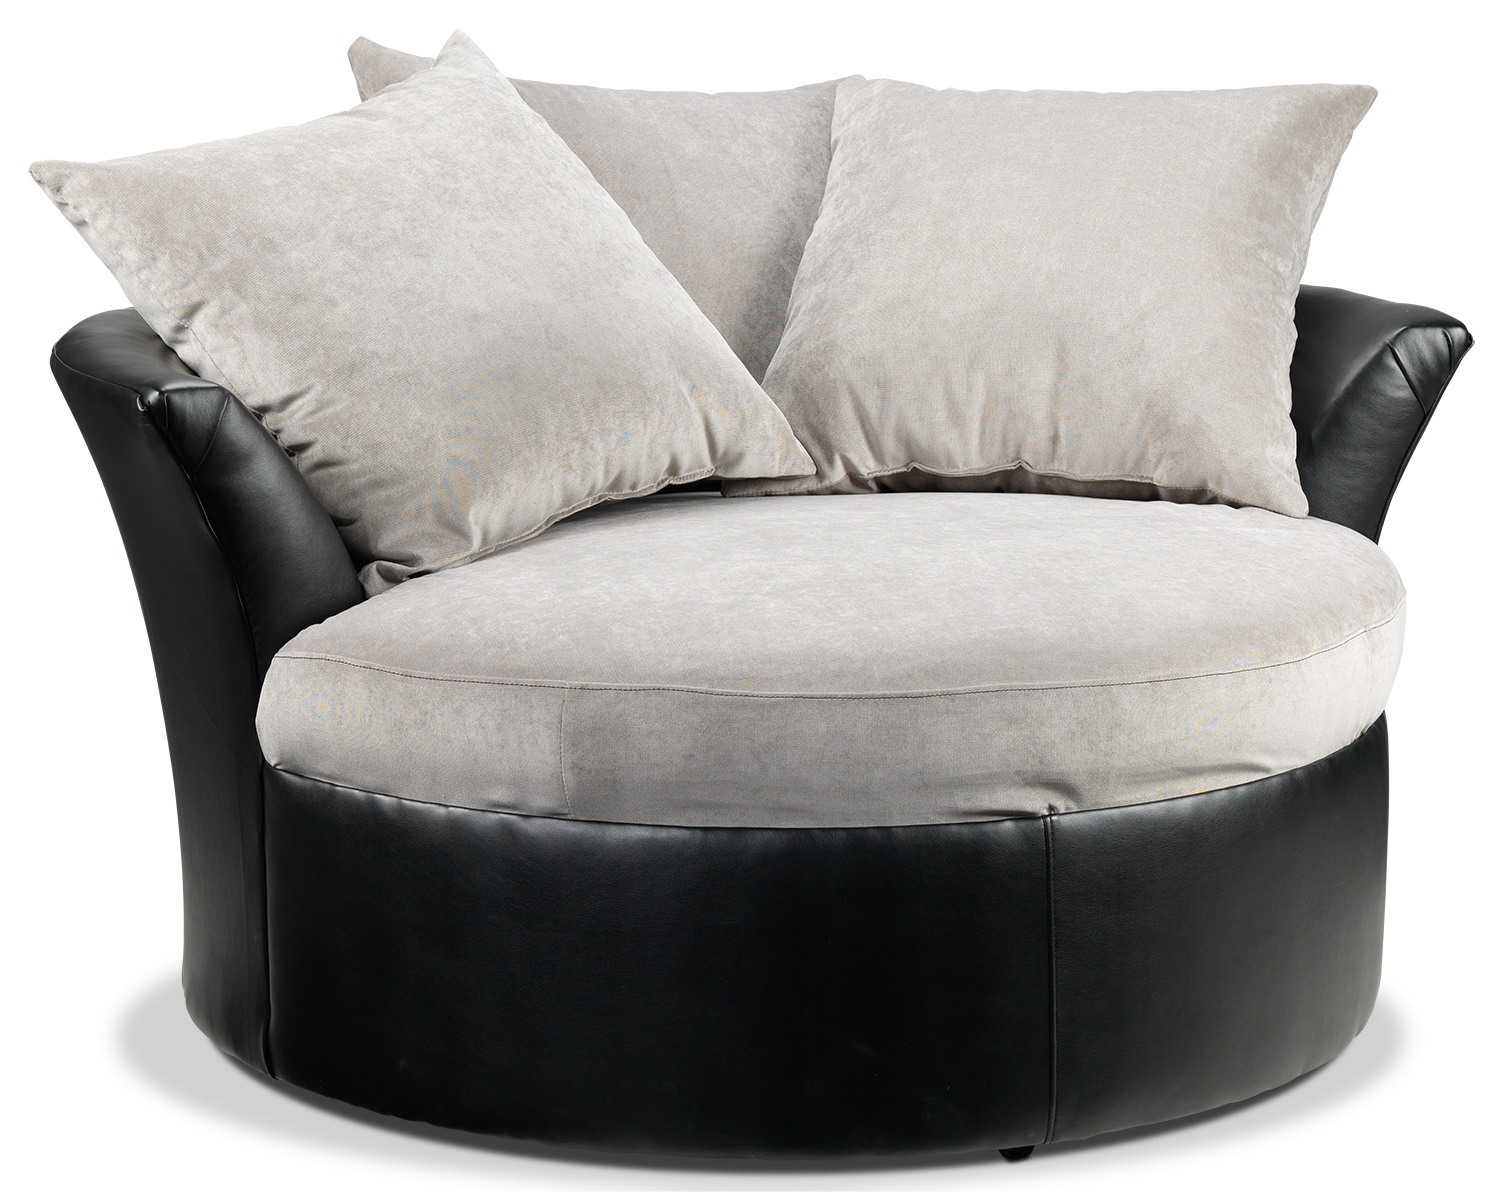 Cuddler Chair - Black, Grey